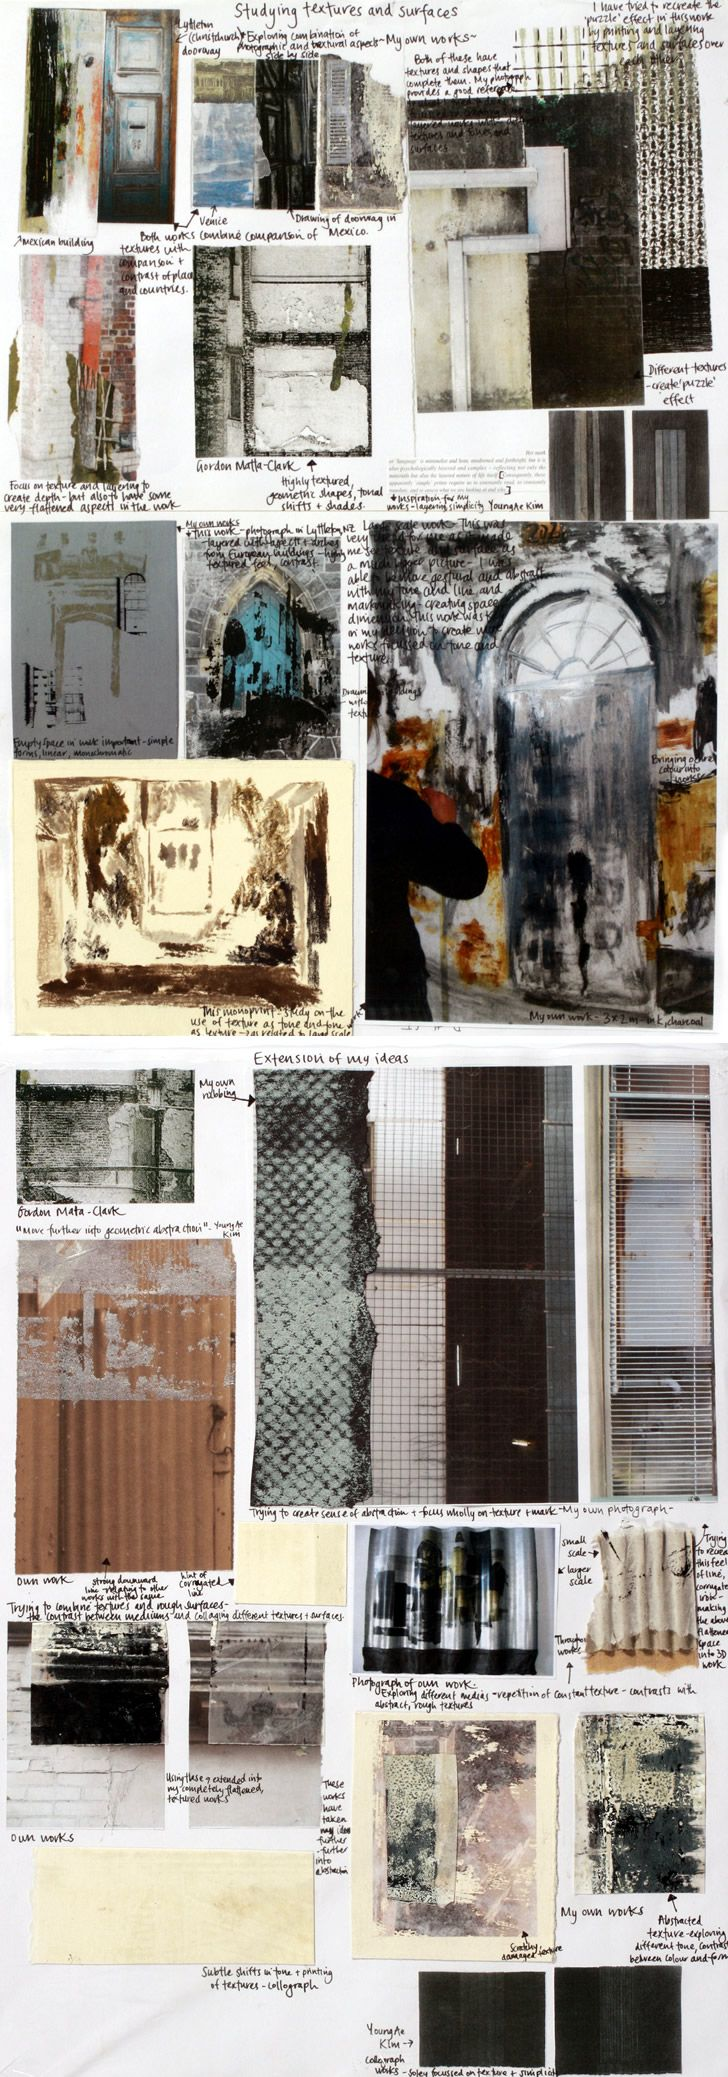 NCEA scholarship sketchbook - textures and media experimentation